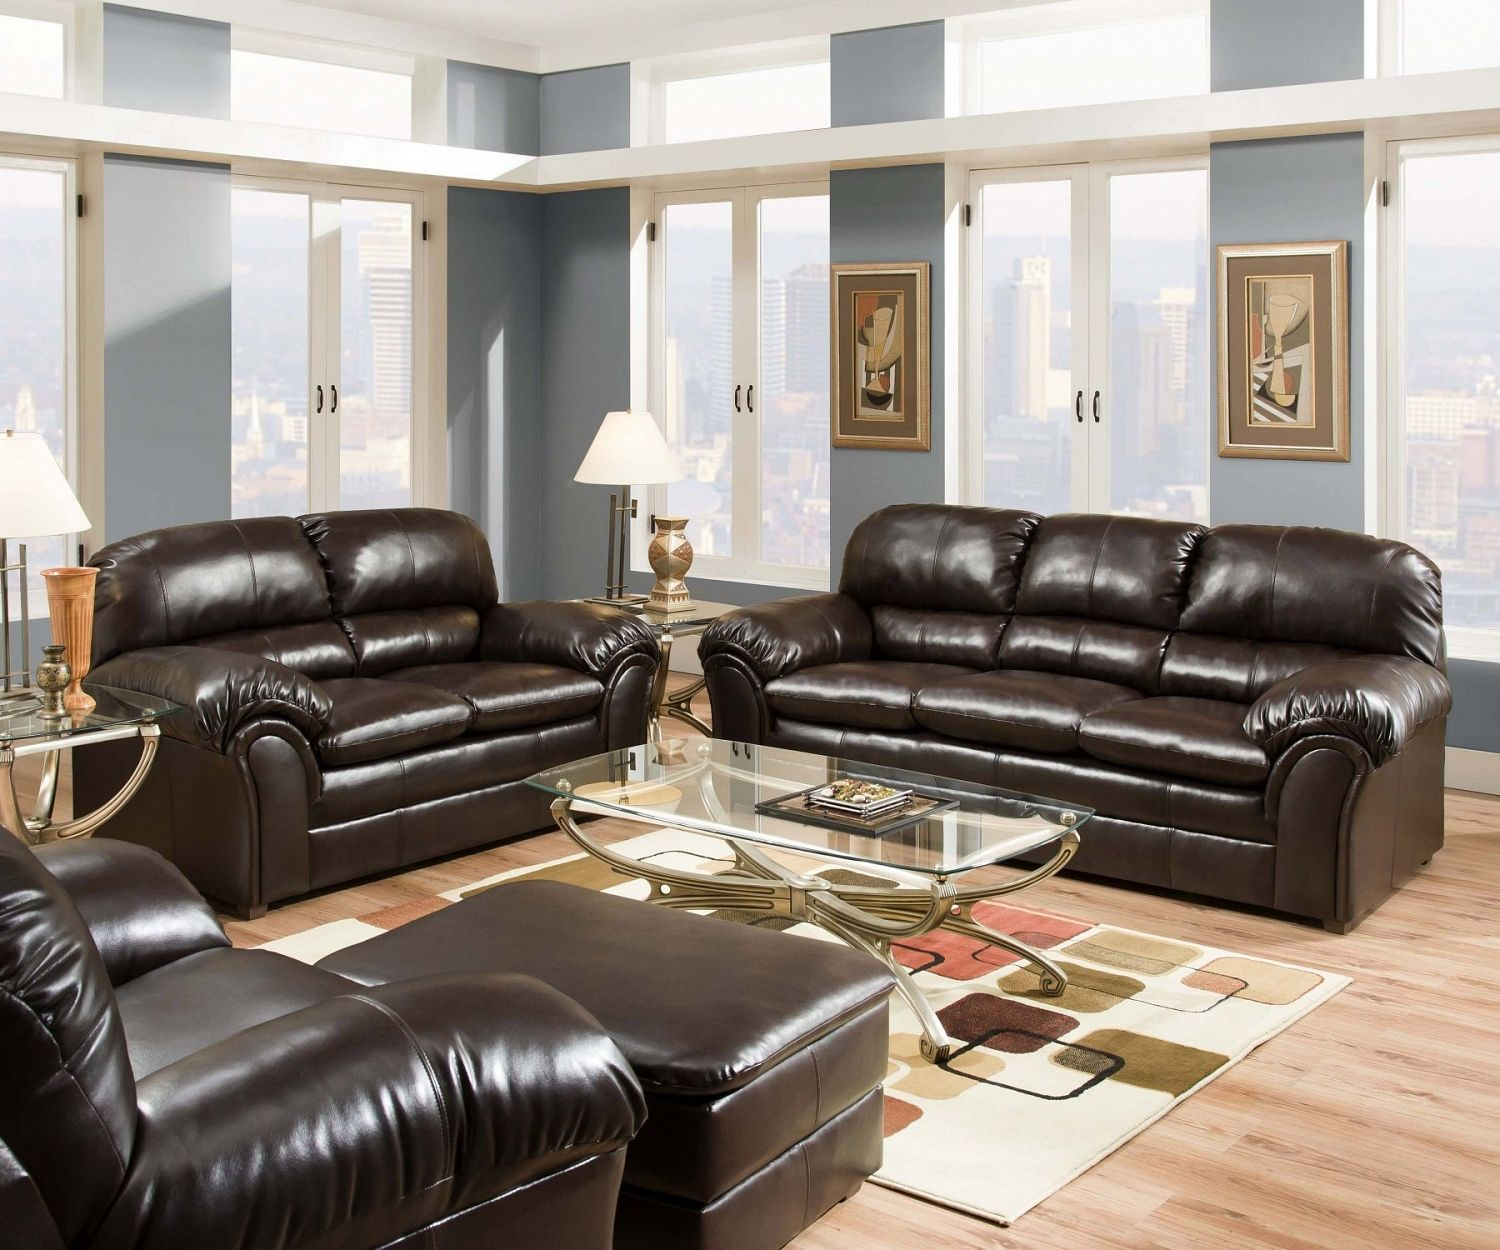 good quality living room furniture%0A Shop our huge selection of high quality sofas  couches  and loveseats  in  fabrics and leathers to enhance any decor